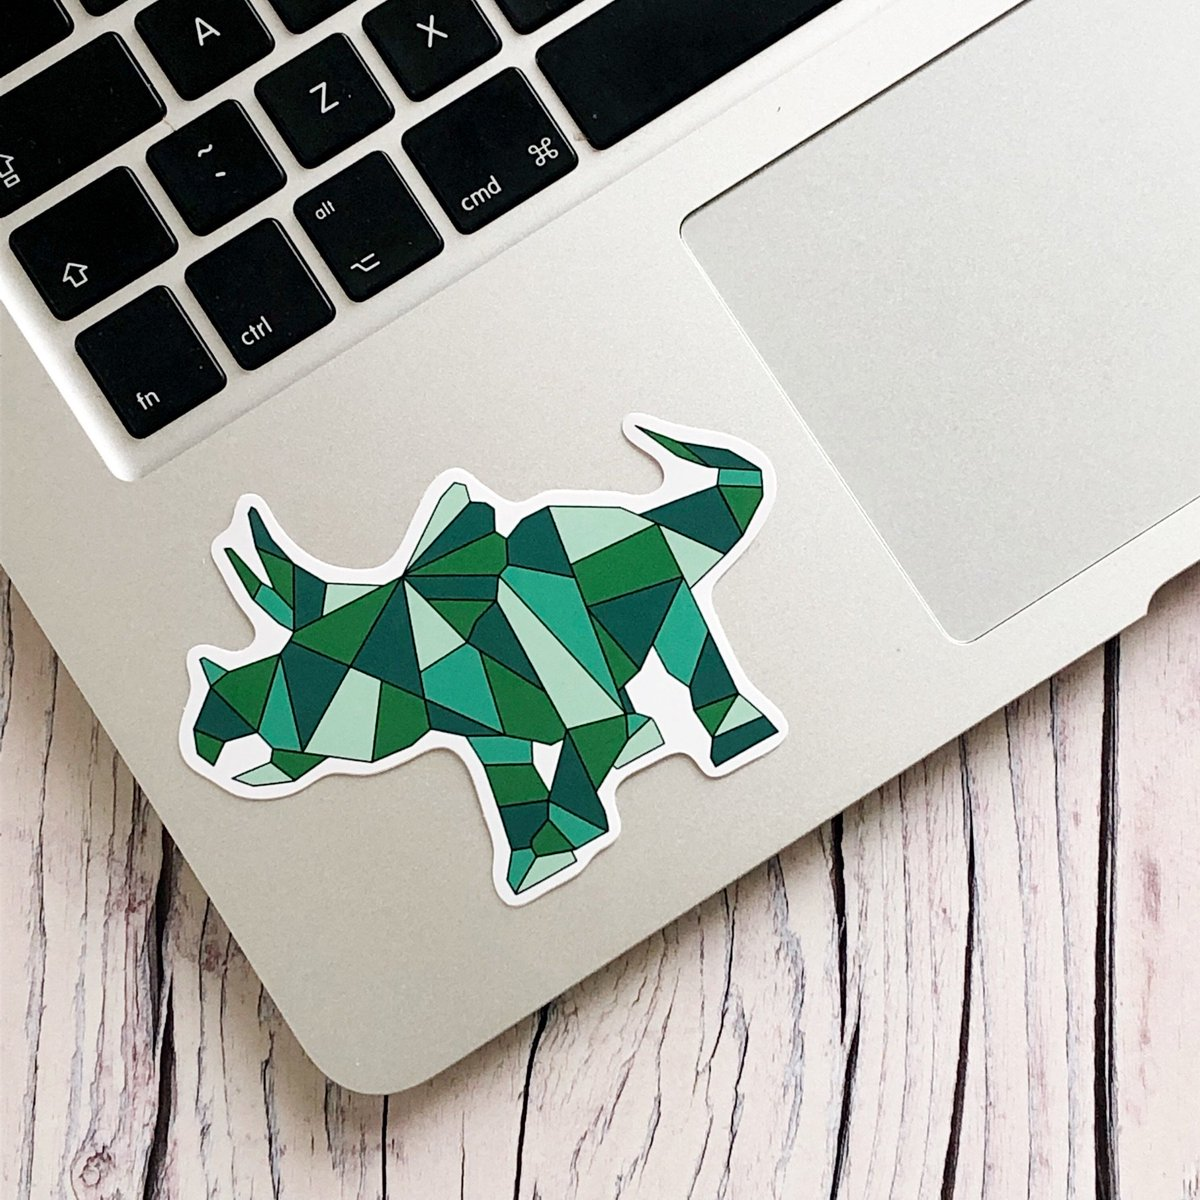 Any #dinosaur fans in? My vinyl dinosaur stickers are a great way to add some giant reptile flair to your laptop or notebook! http://bit.ly/geodinostickers #handmadehour